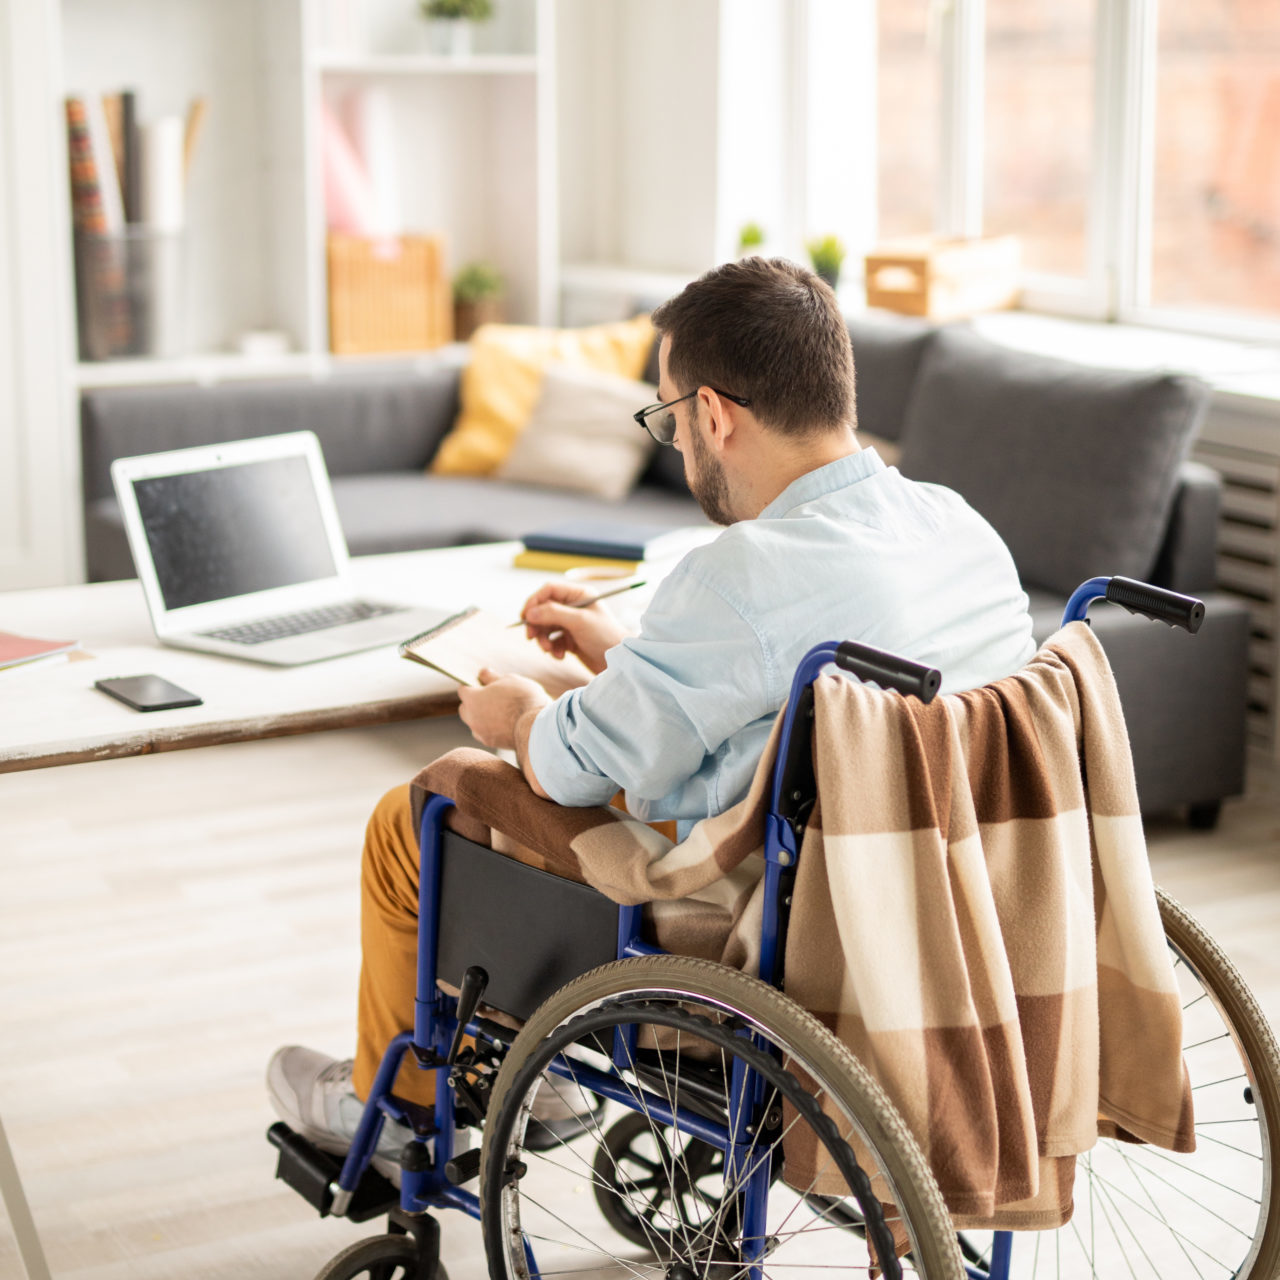 Businessman in casualwear making working notes in notepad while sitting in wheelchair at home